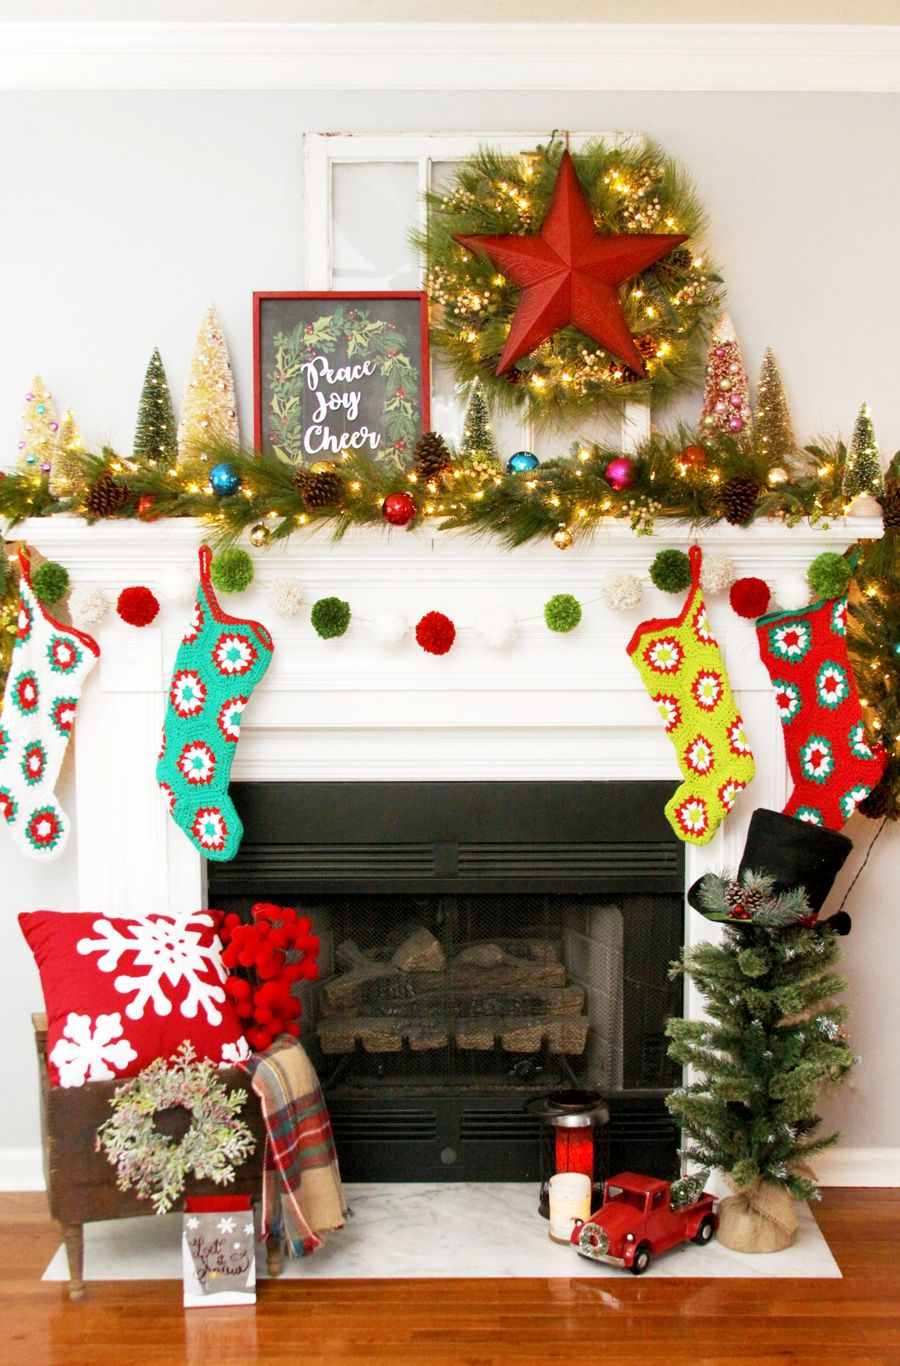 30 Christmas Mantel Decor Ideas to Make Your Home Merry and Bright